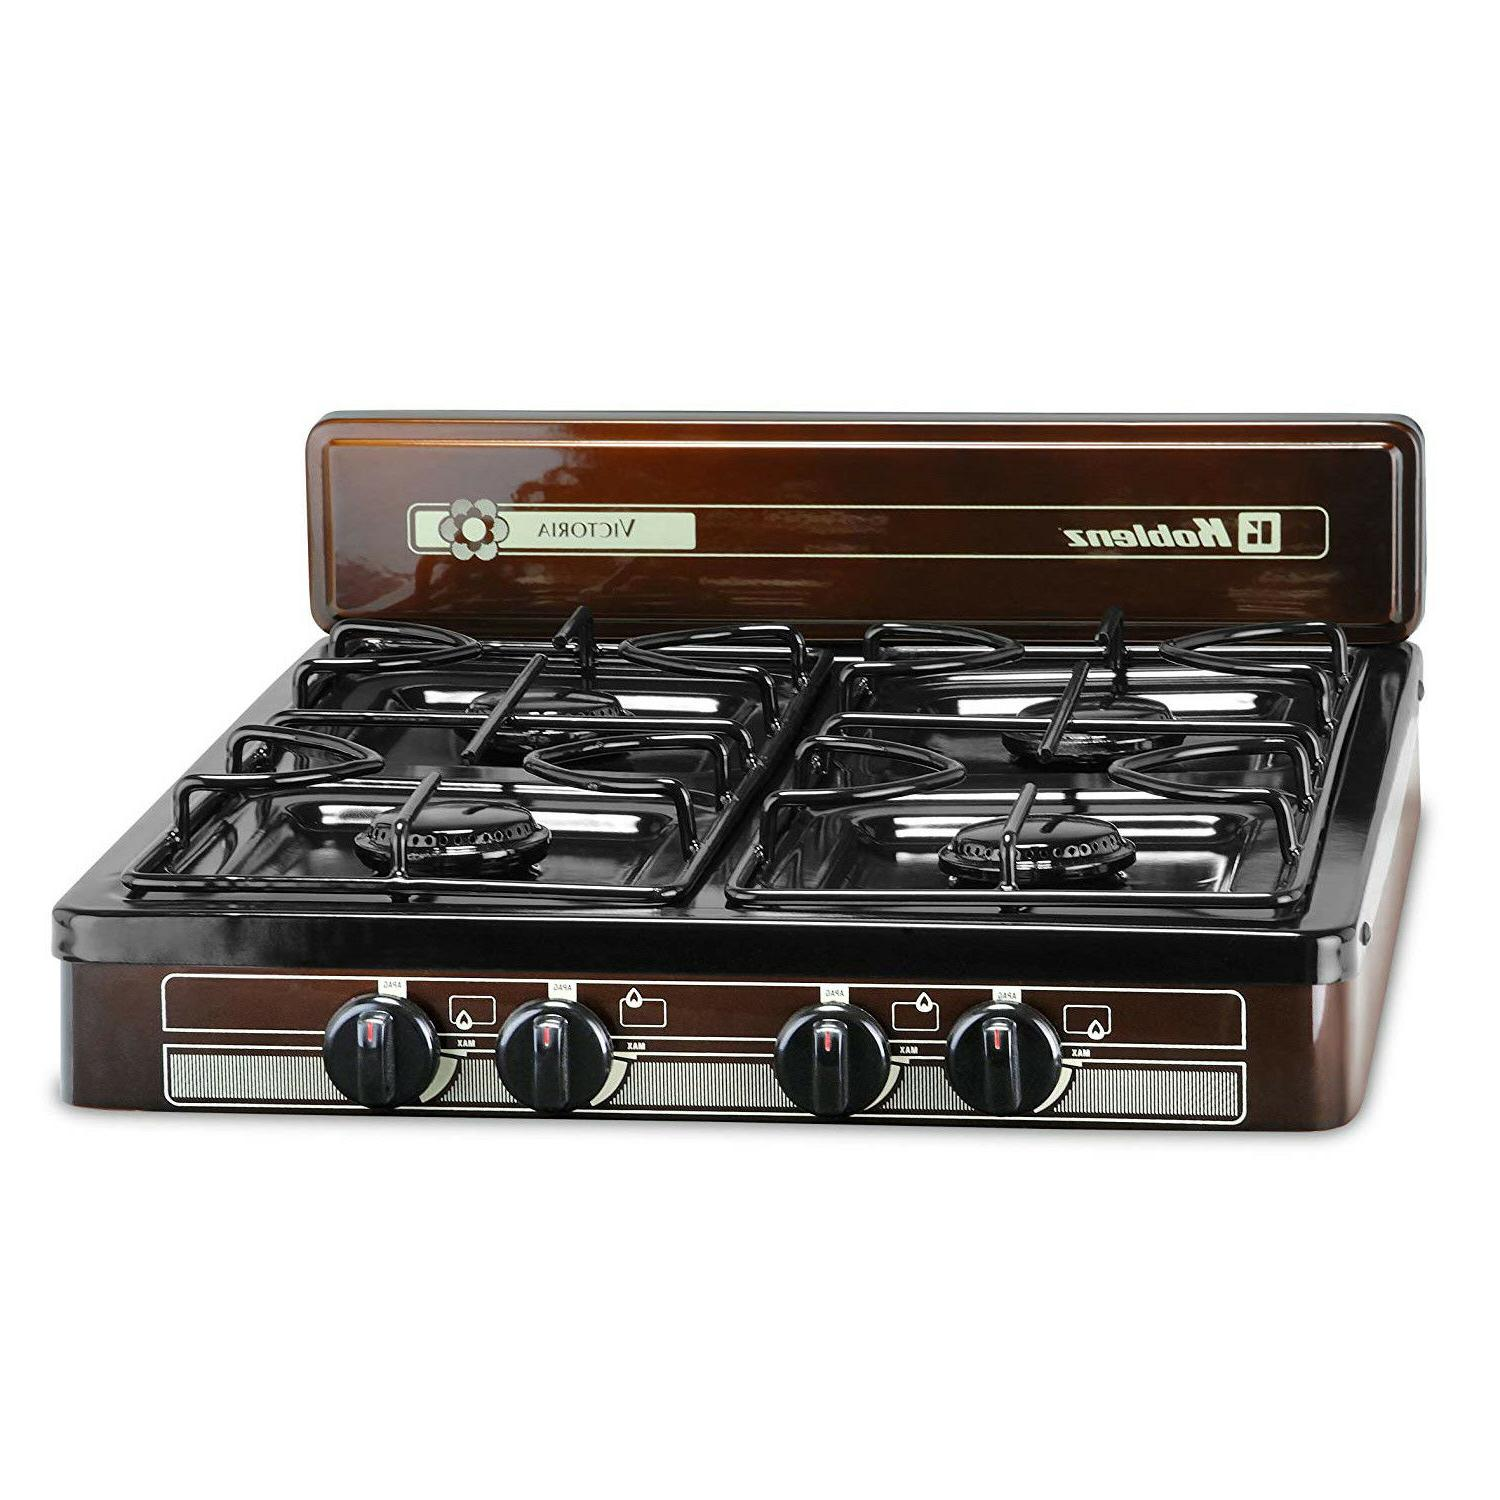 4-Burner Portable Stove Outdoor Camping RV Kitchen Cooktop